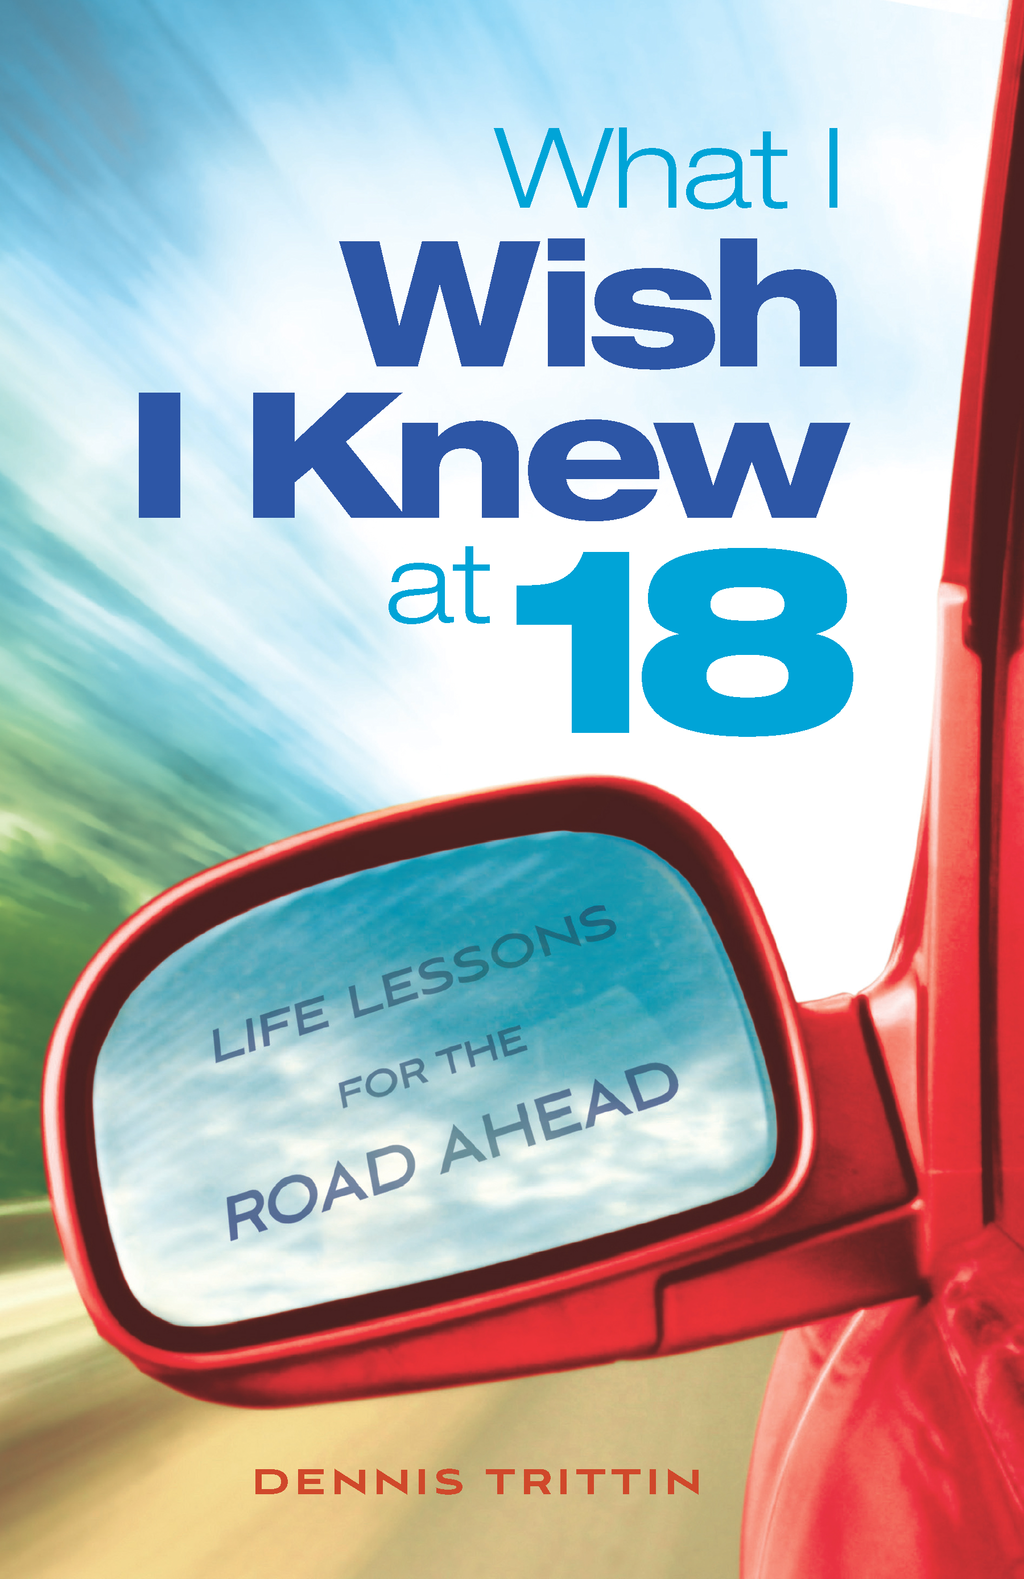 What I Wish I Knew at 18: Life Lessons for the Road Ahead By: Dennis Trittin,Arlyn Lawrence